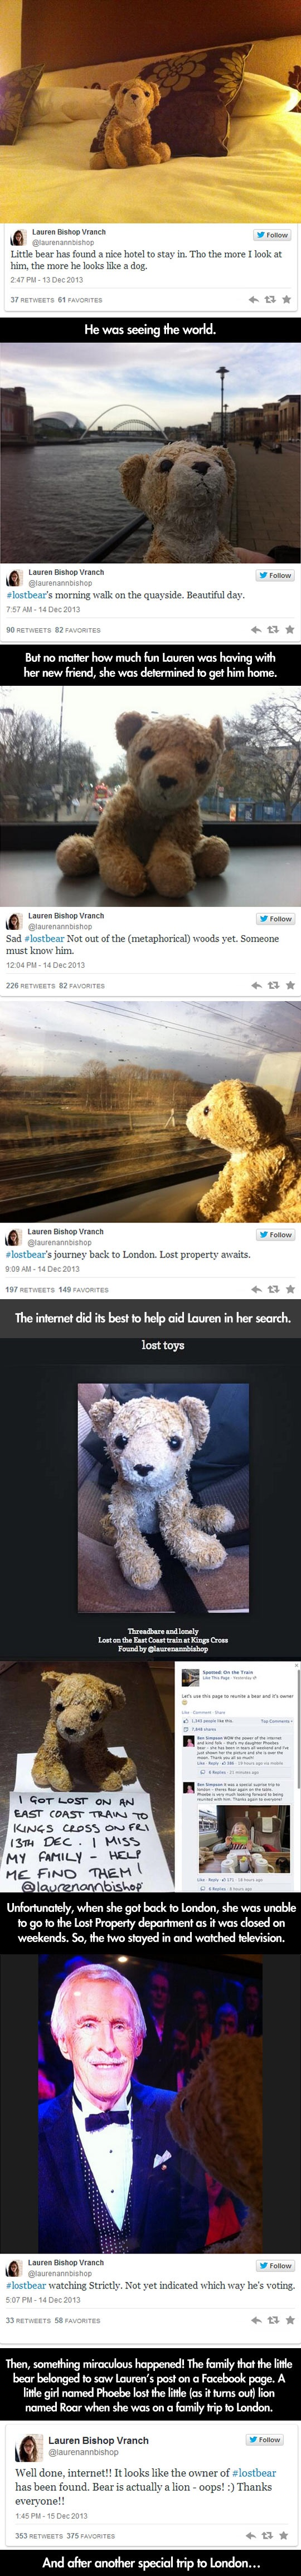 Little Girl Loses Her Stuffed Animal, Then The Internet Does Something Awesome